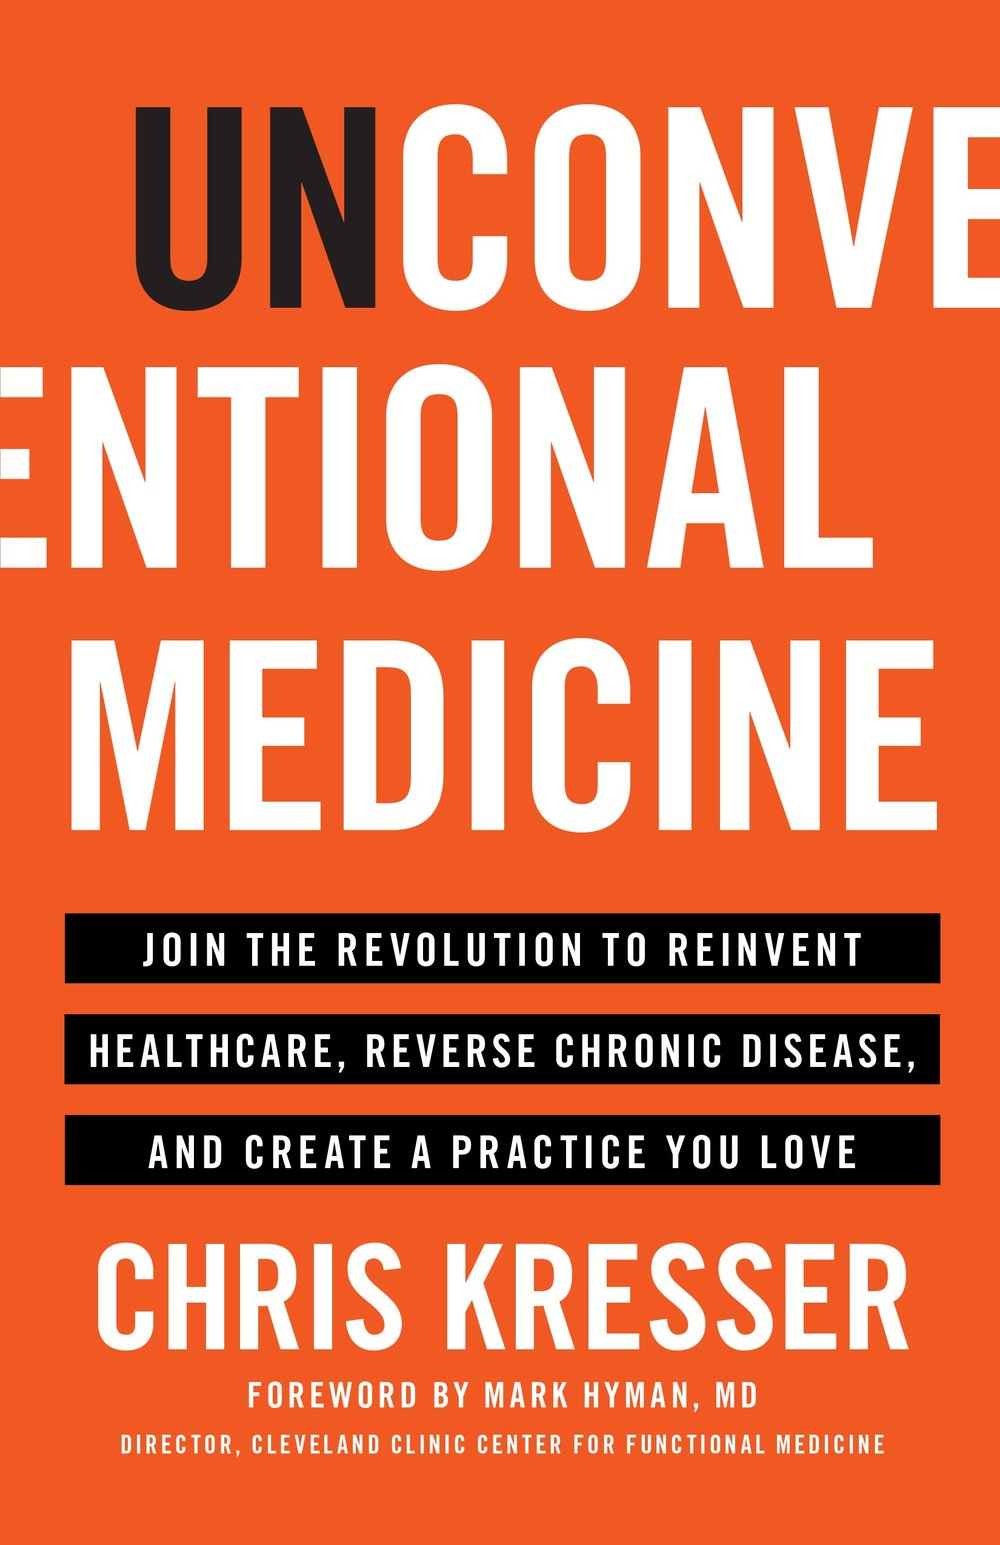 Unconventional Medicine Join the Revolution to Reinvent Healthcare, Reverse Chronic Disease, and Create a Practice You Love.jpg